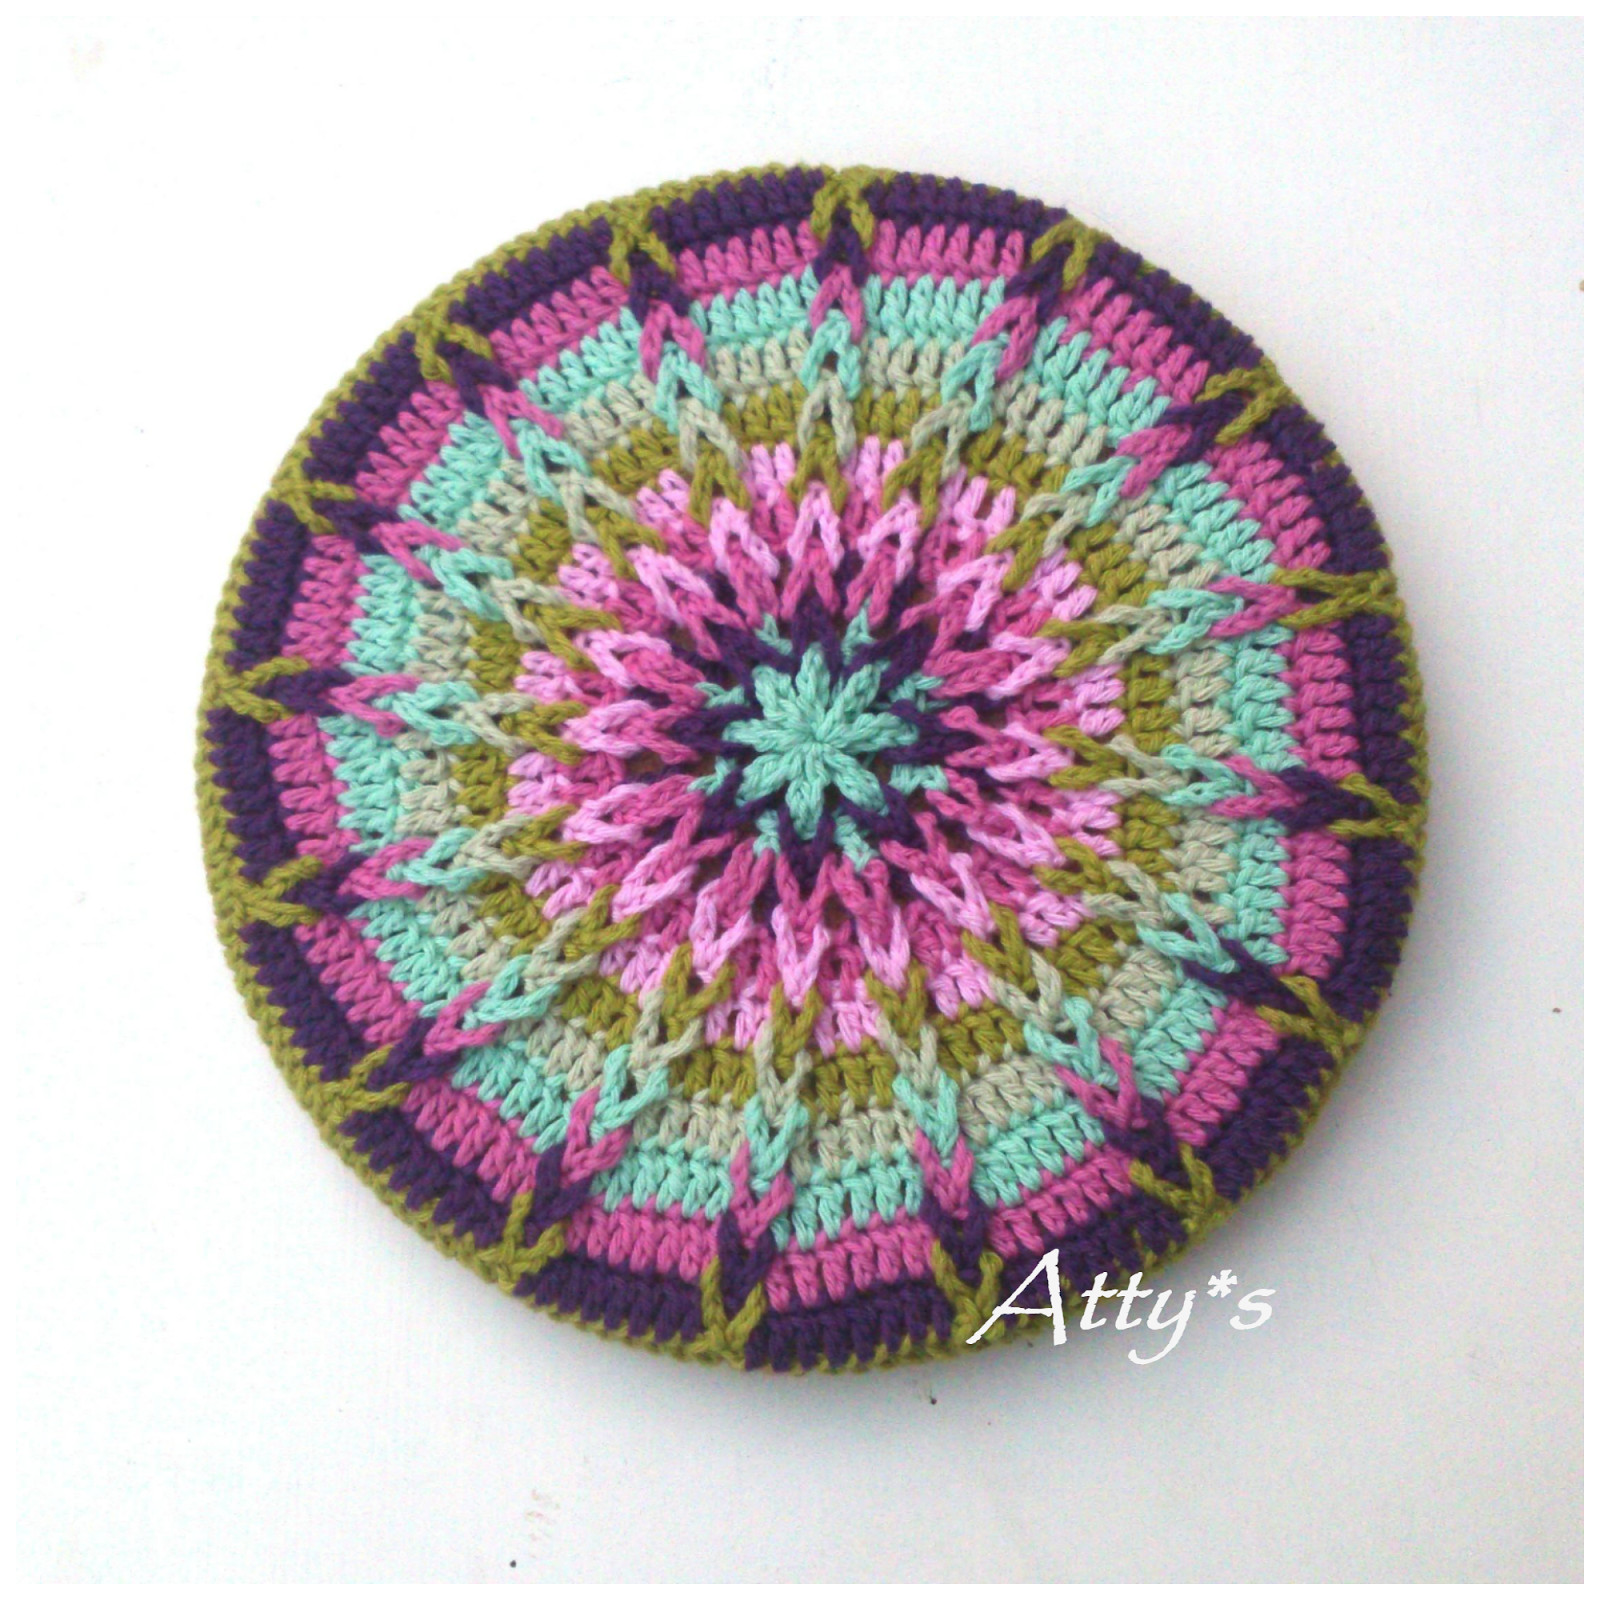 atty s Crochet Mandala Pot Coaster Tutorial